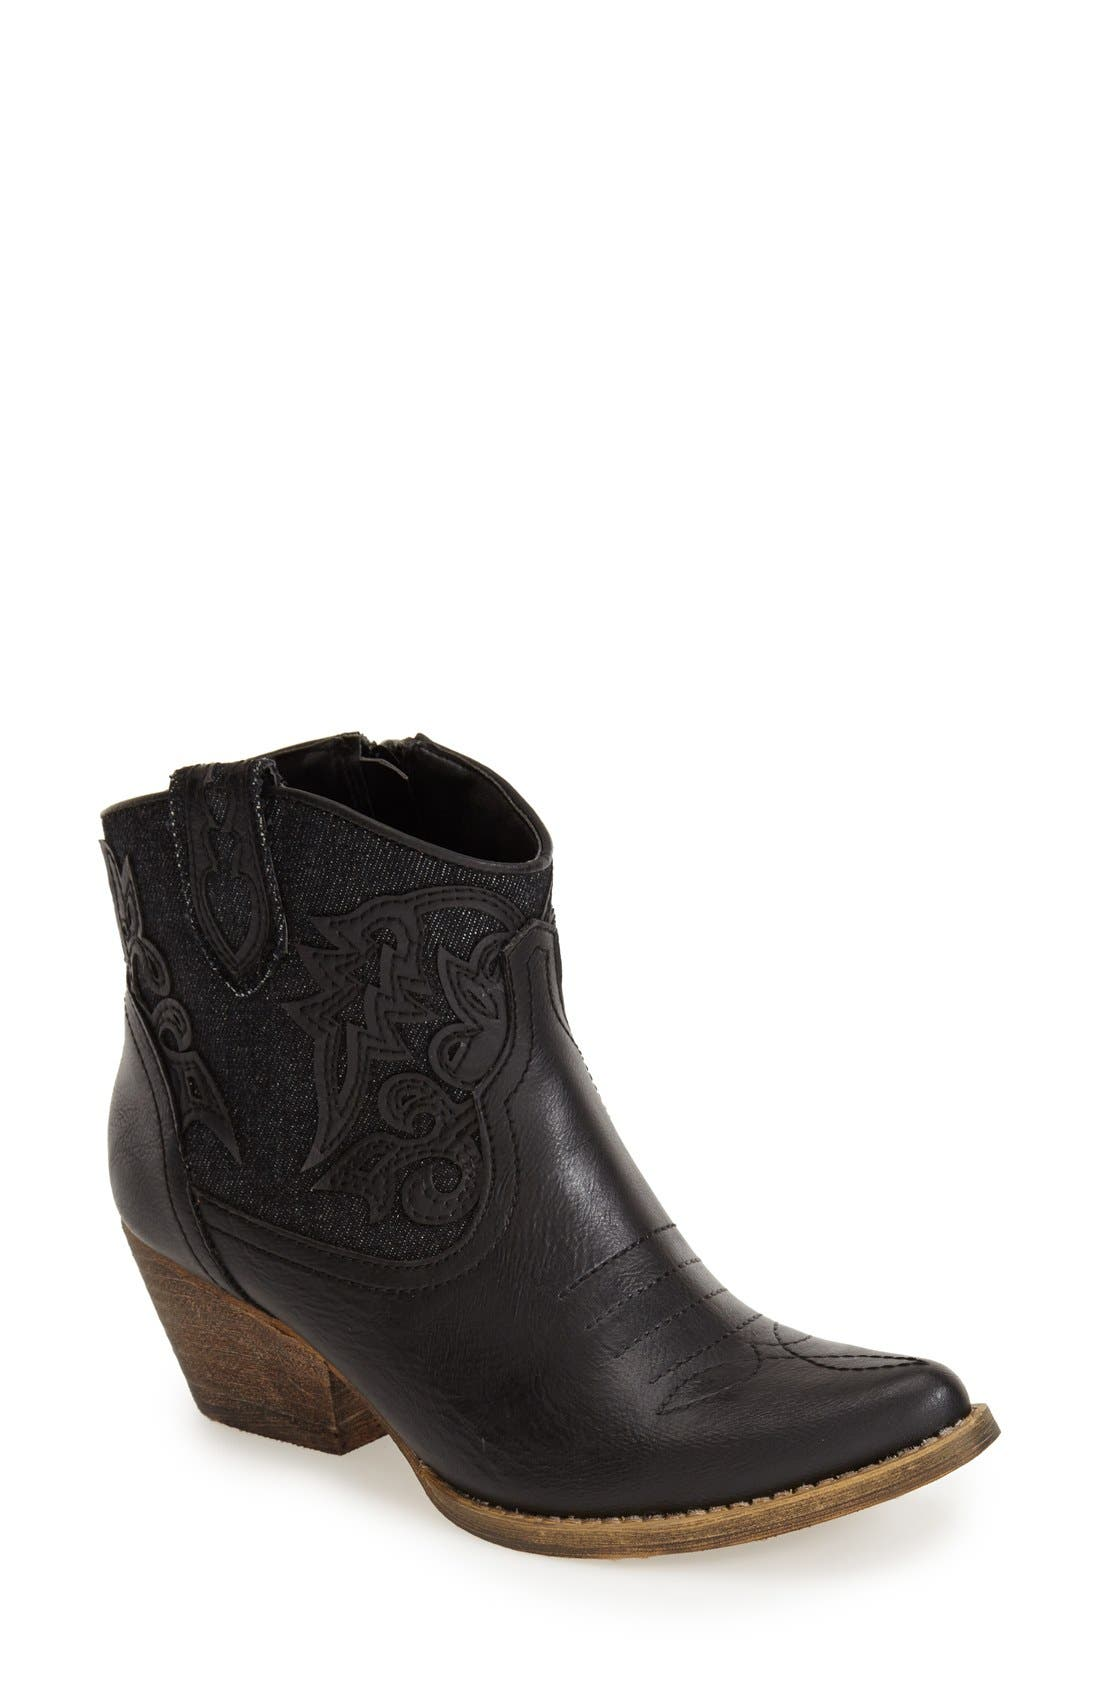 Alternate Image 1 Selected - Very Volatile 'Prine' Short Western Boot (Women)